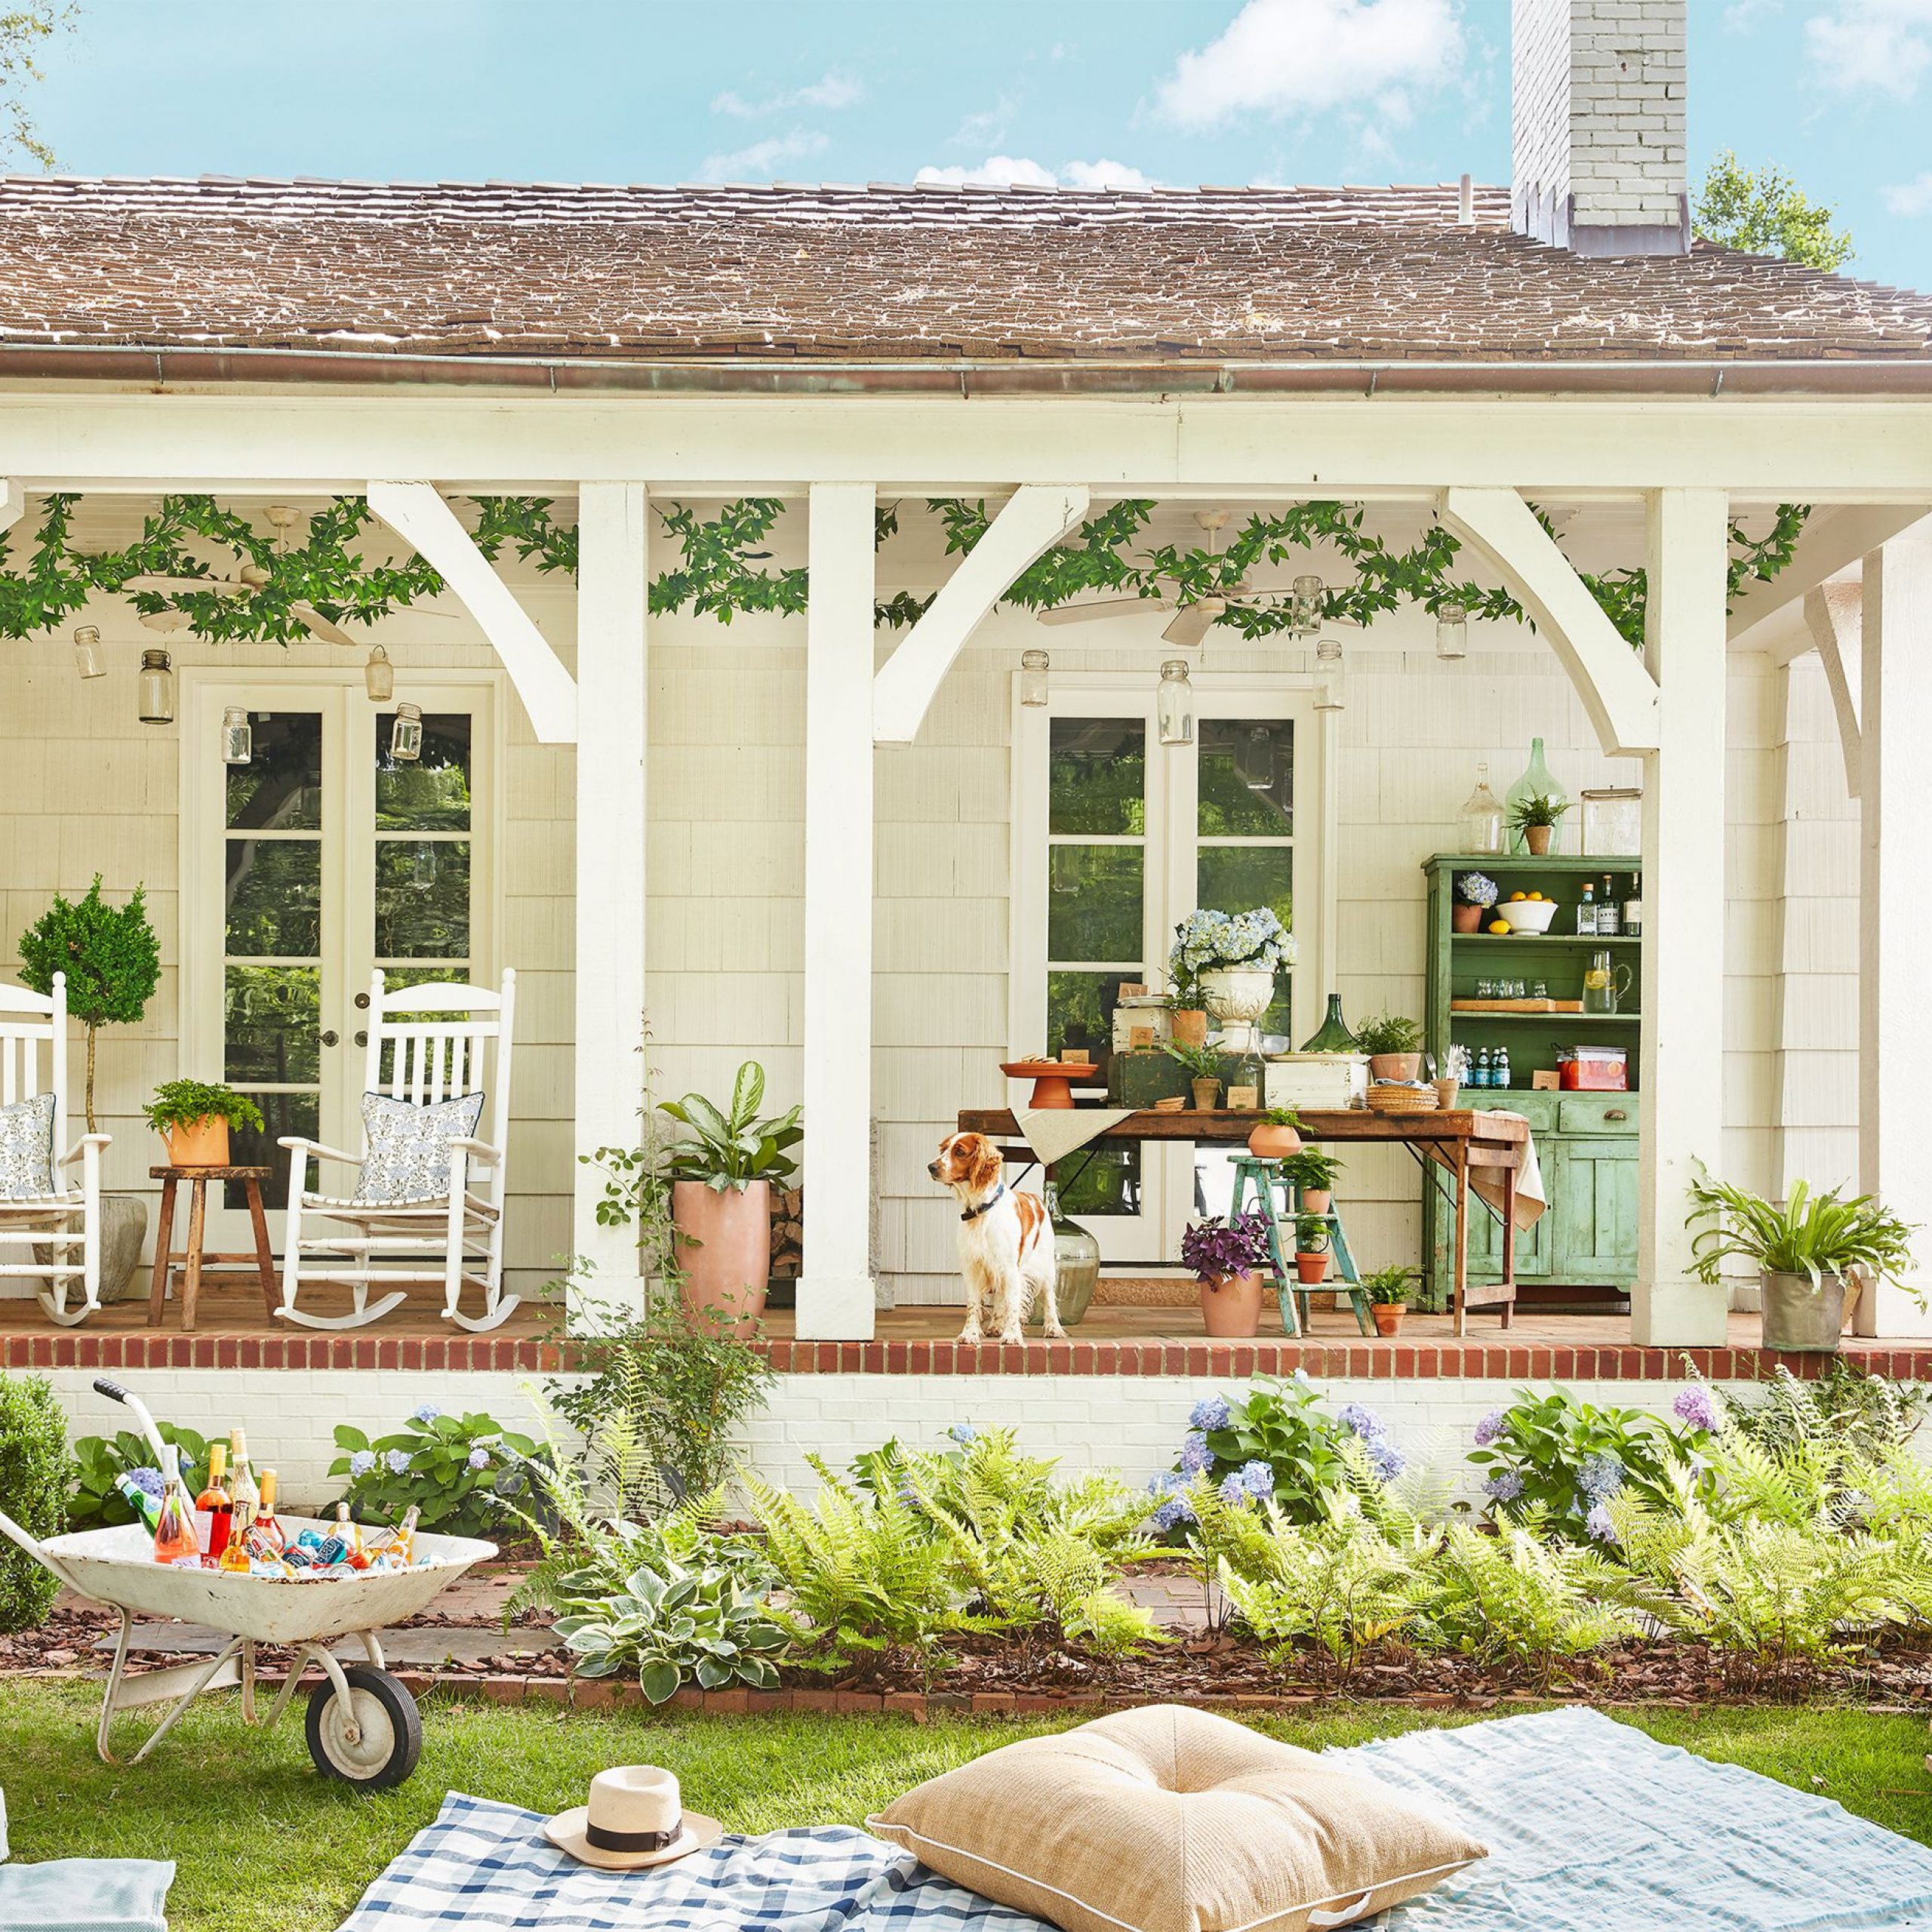 28 Charming Front Porch Ideas – Chic Porch Design And Inside Well Liked Lamp Outdoor Porch Swings (View 23 of 30)